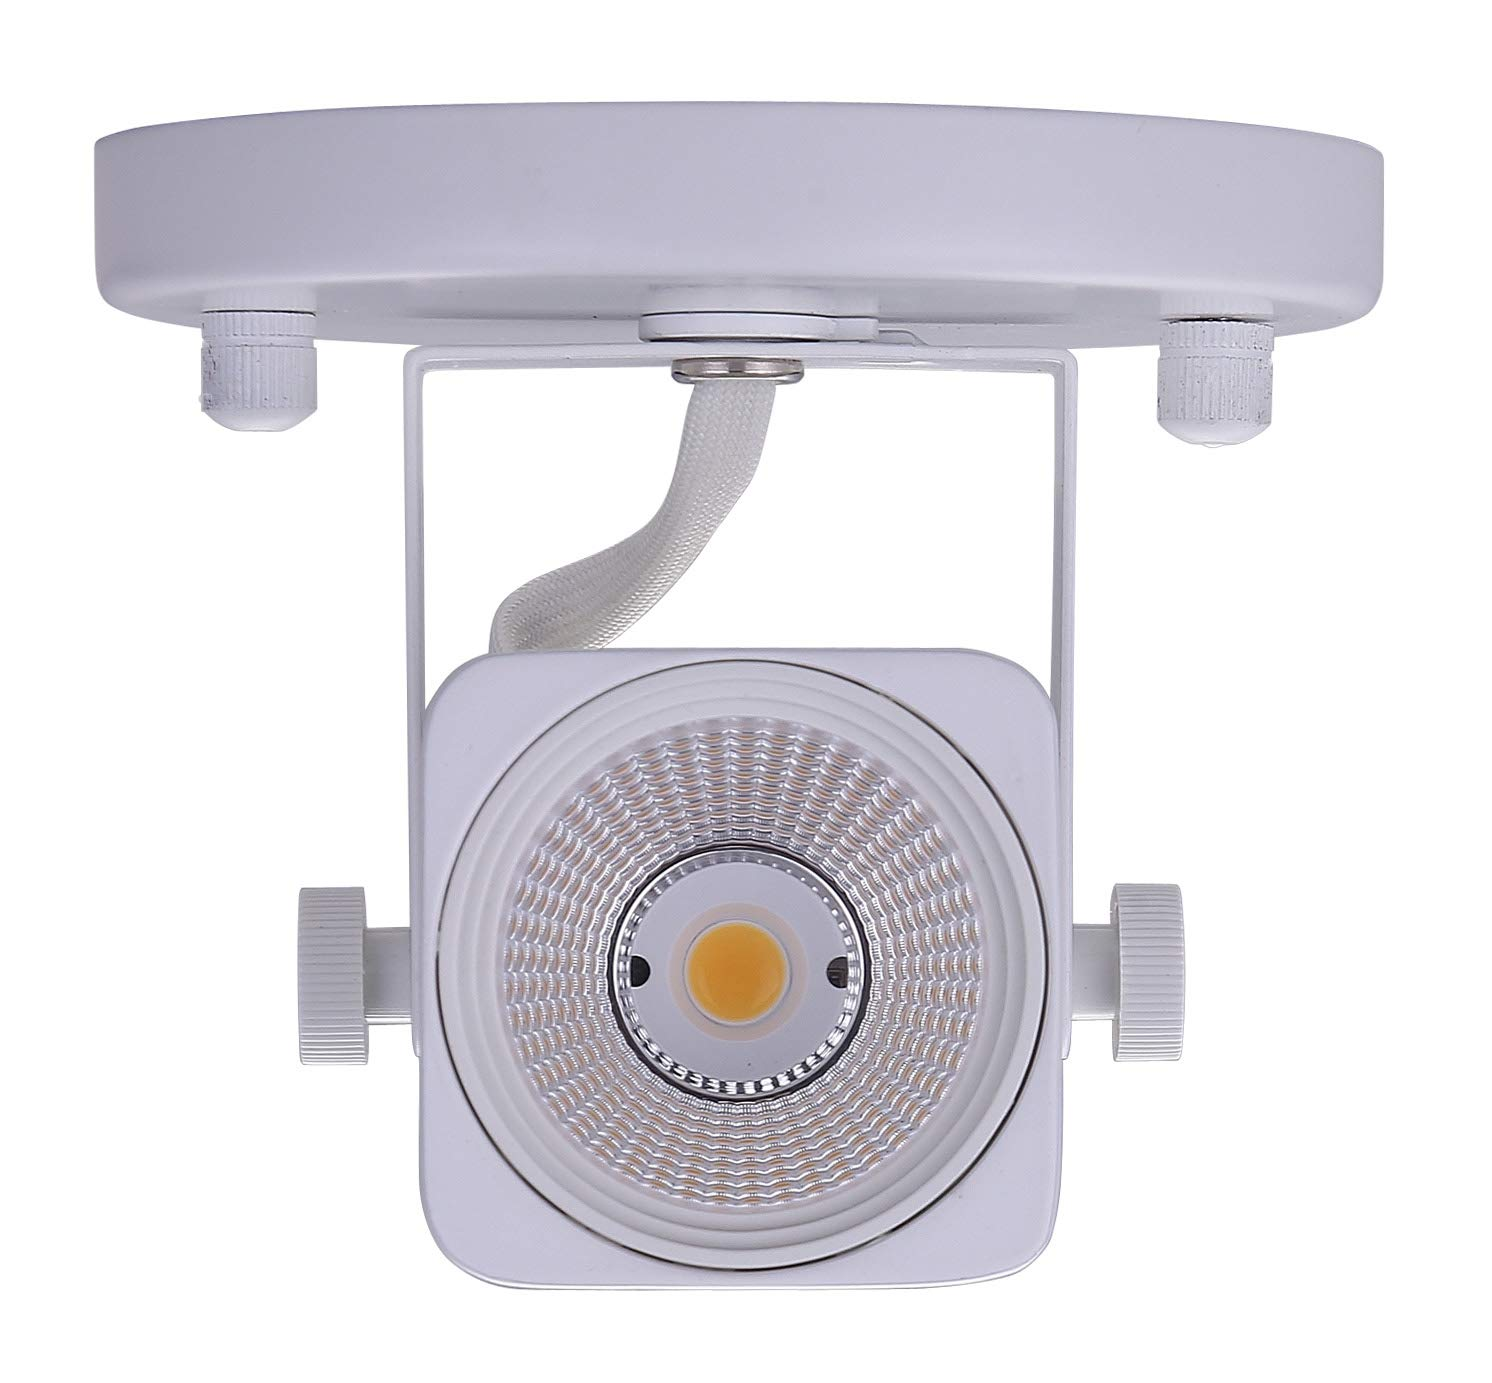 Cloudy Bay LED Ceiling Light Fixture Spot,CRI90+ Warm White Dimmable,White Finish by Cloudy Bay (Image #3)